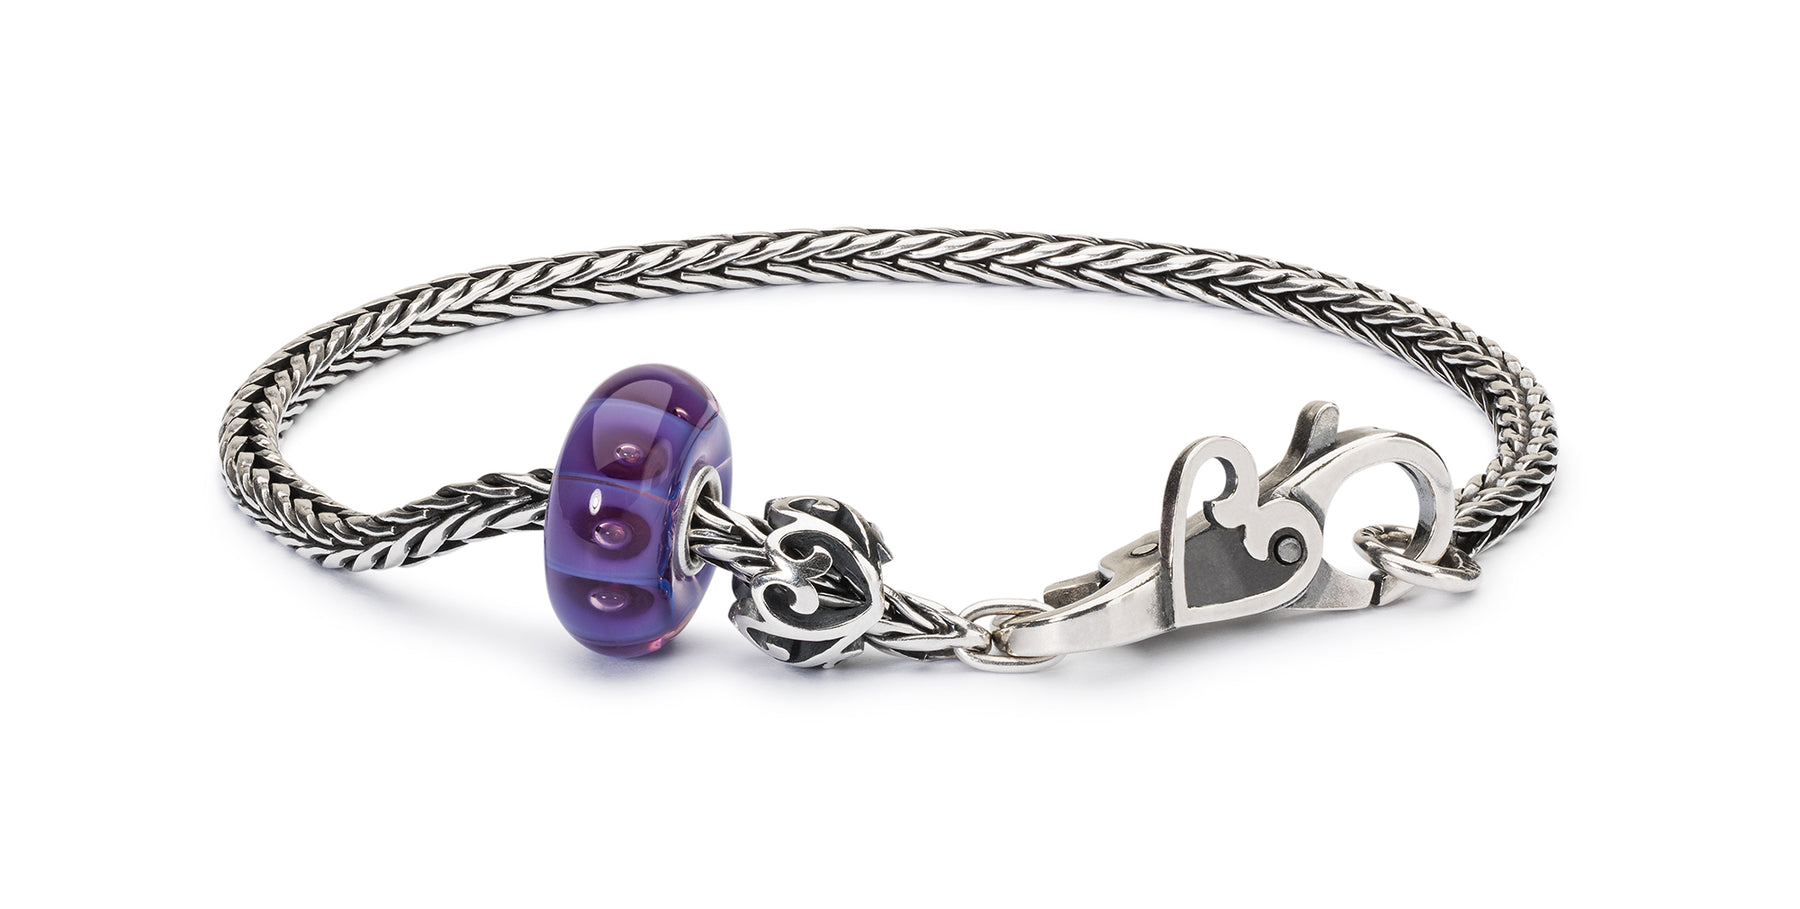 From The Heart Bracelet – Trollbeads Limited Edition Release